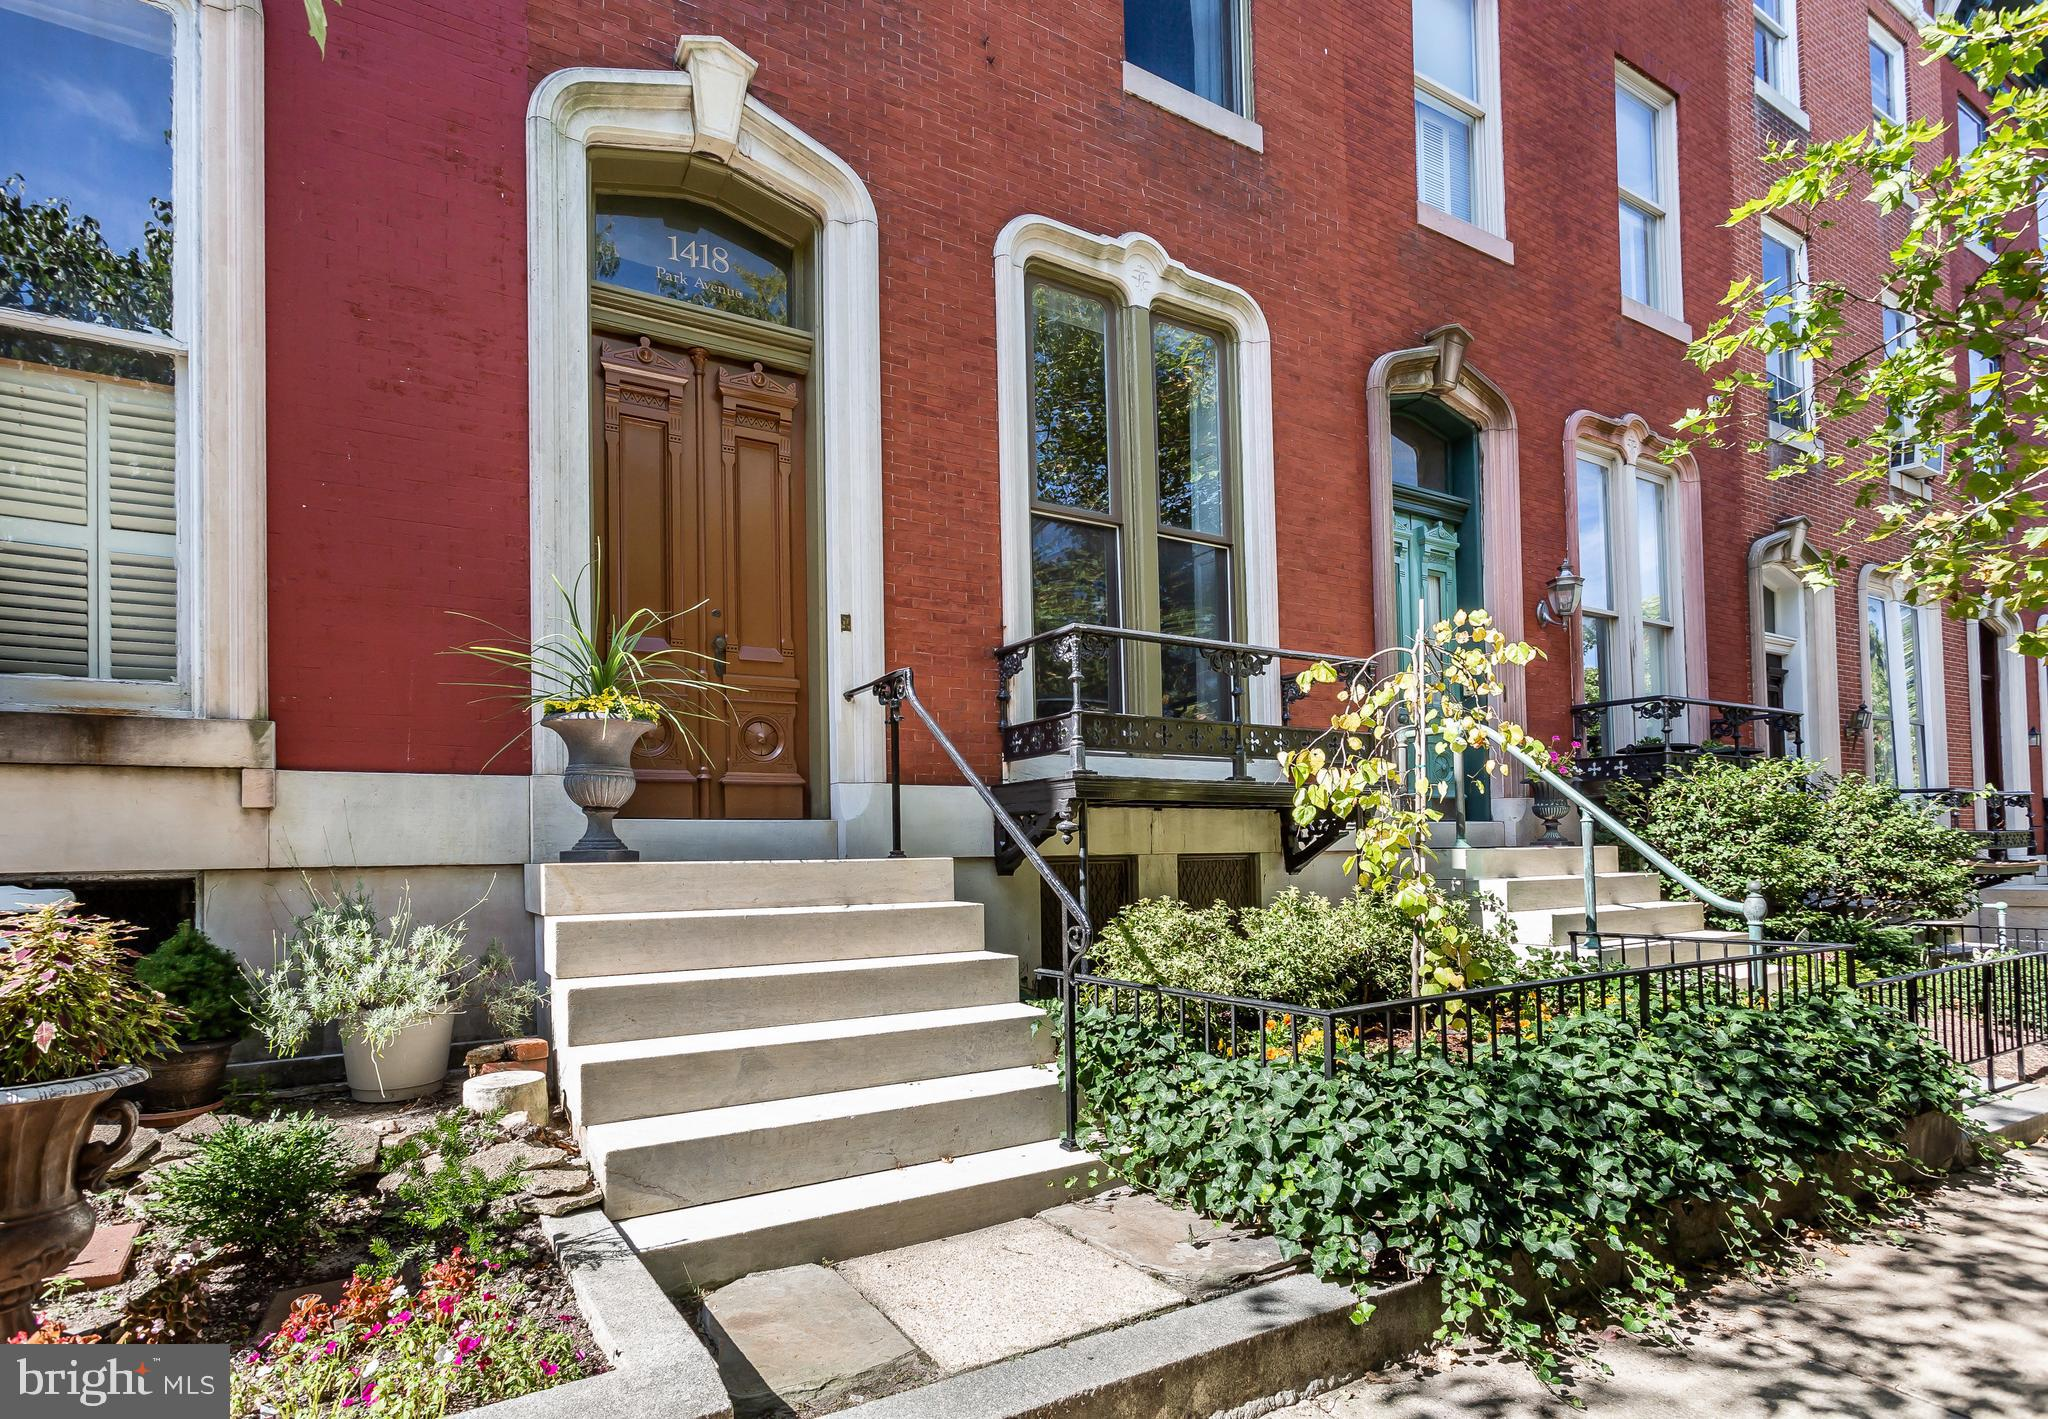 1418 PARK AVENUE, BALTIMORE, MD 21217